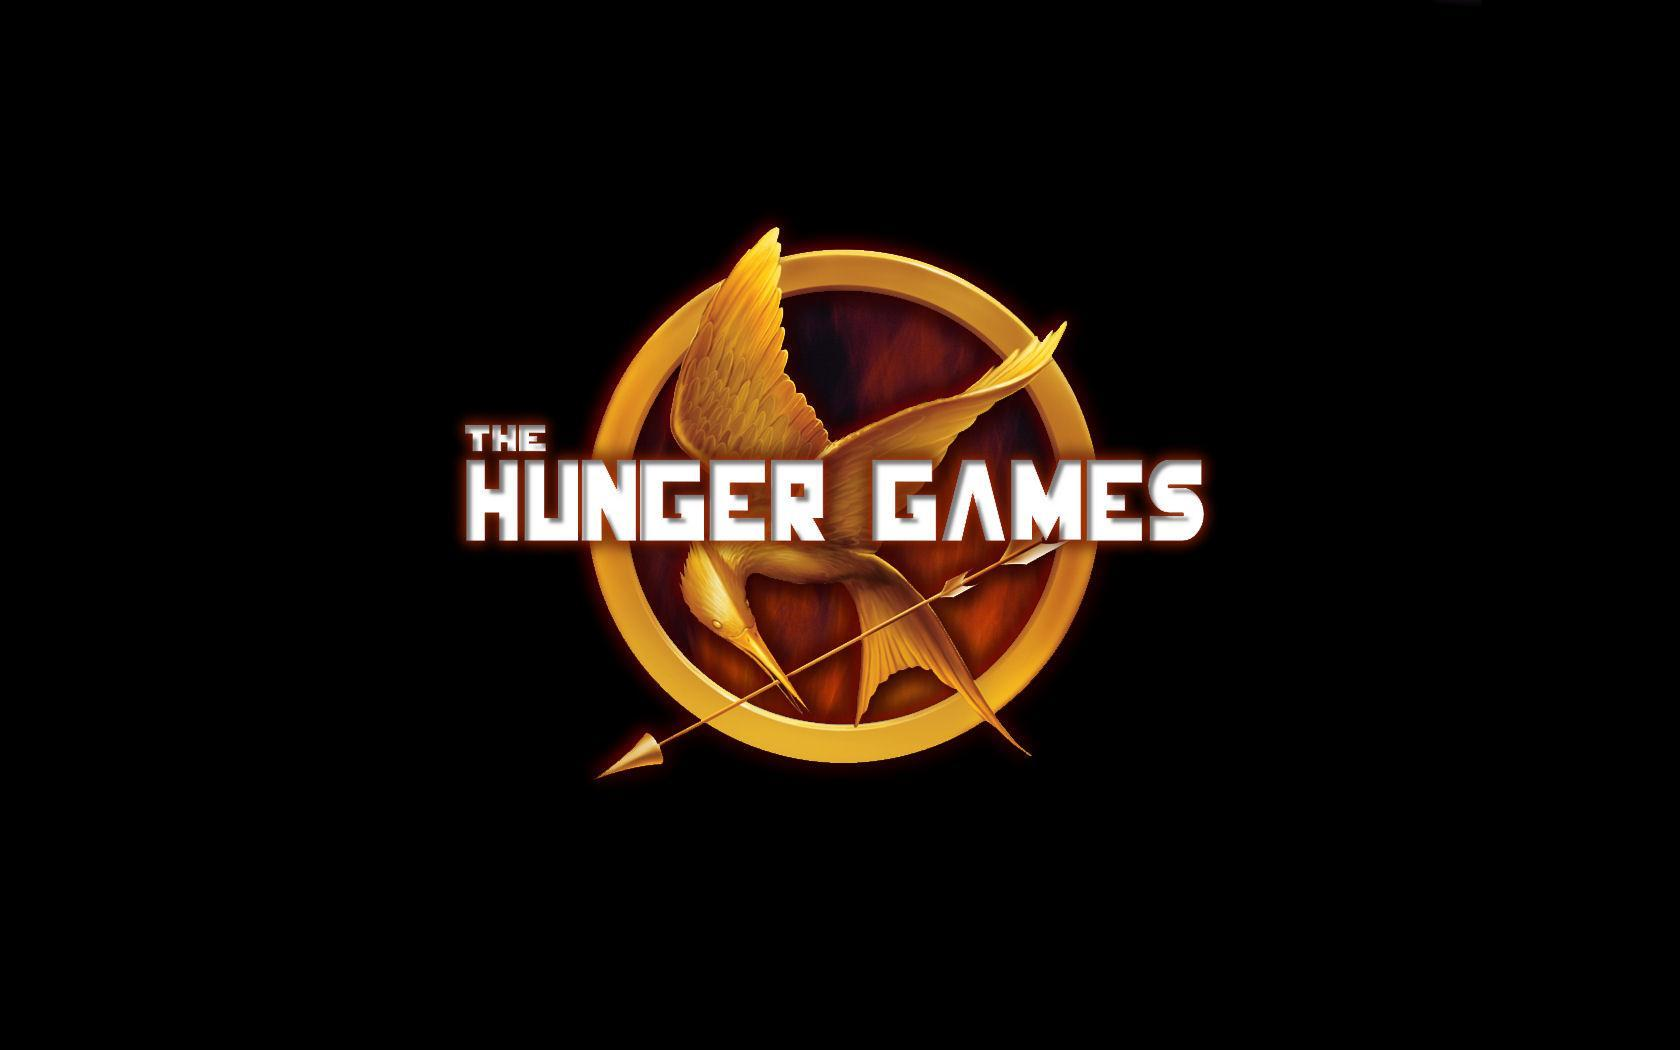 how well do you know the hunger games? (5)